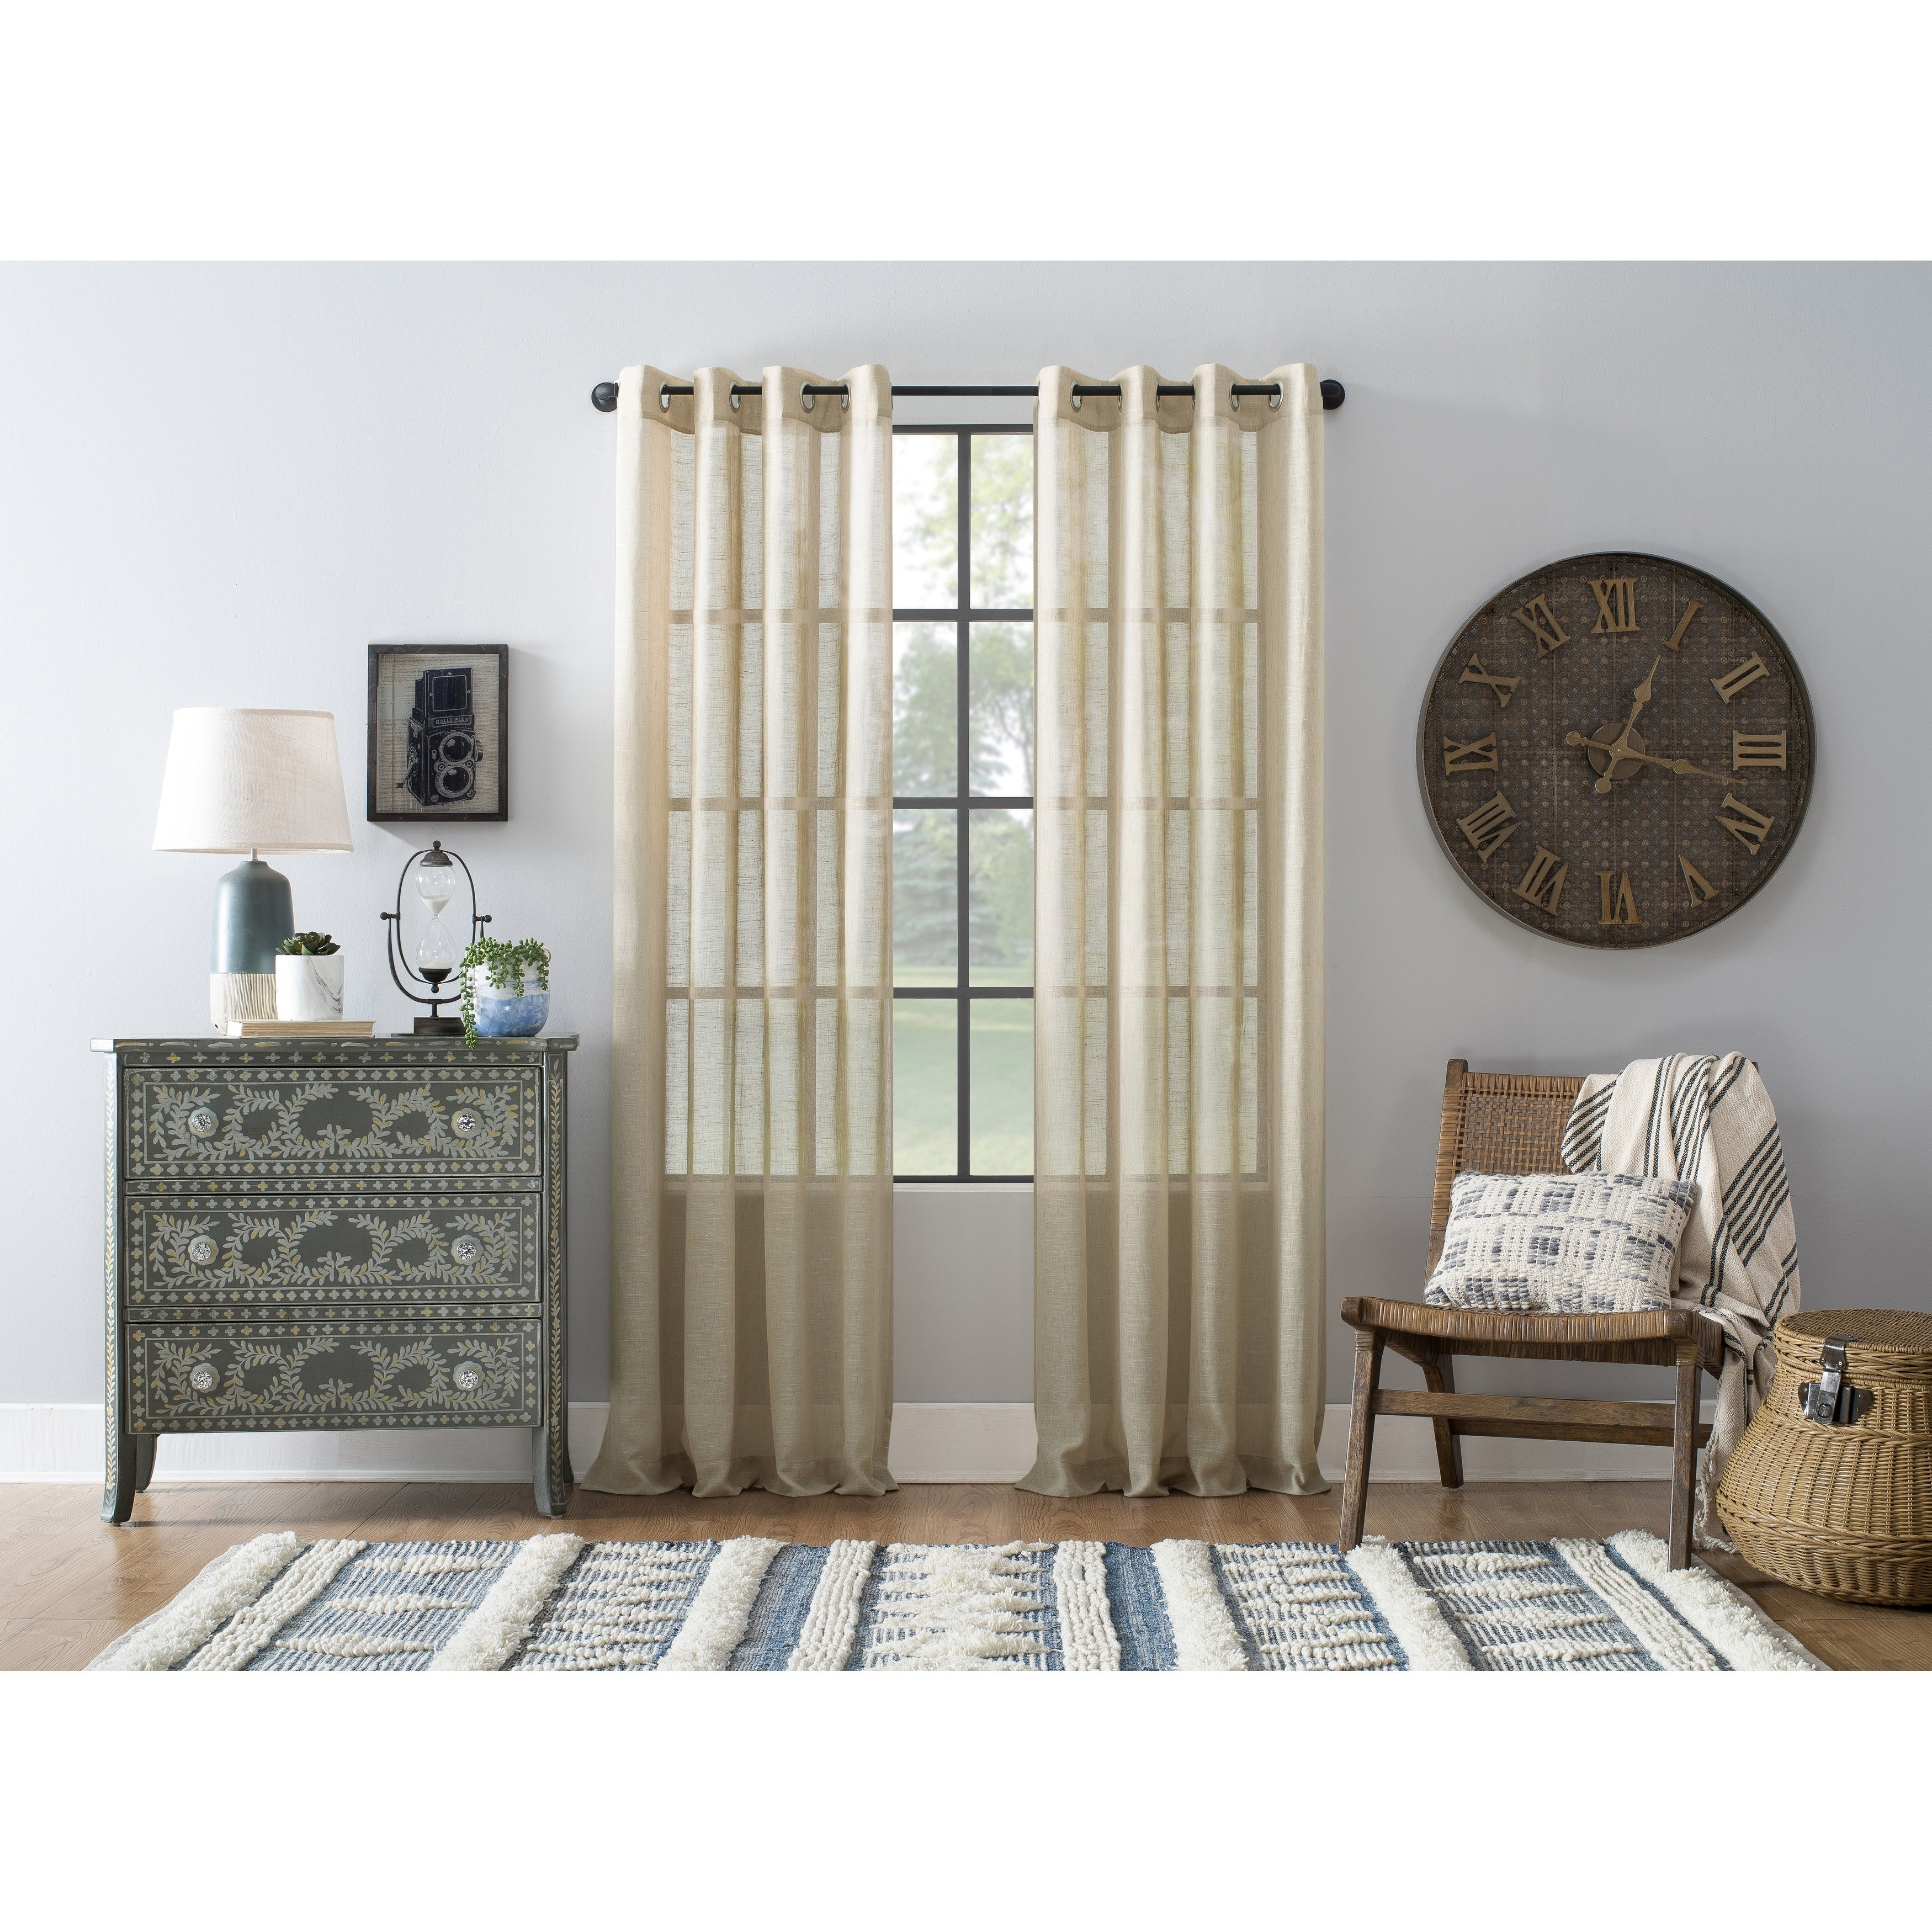 Archaeo Slub Textured Linen Blend Grommet Top Curtain In White – 52 X 84  (As Is Item) Intended For Archaeo Slub Textured Linen Blend Grommet Top Curtains (Image 6 of 20)